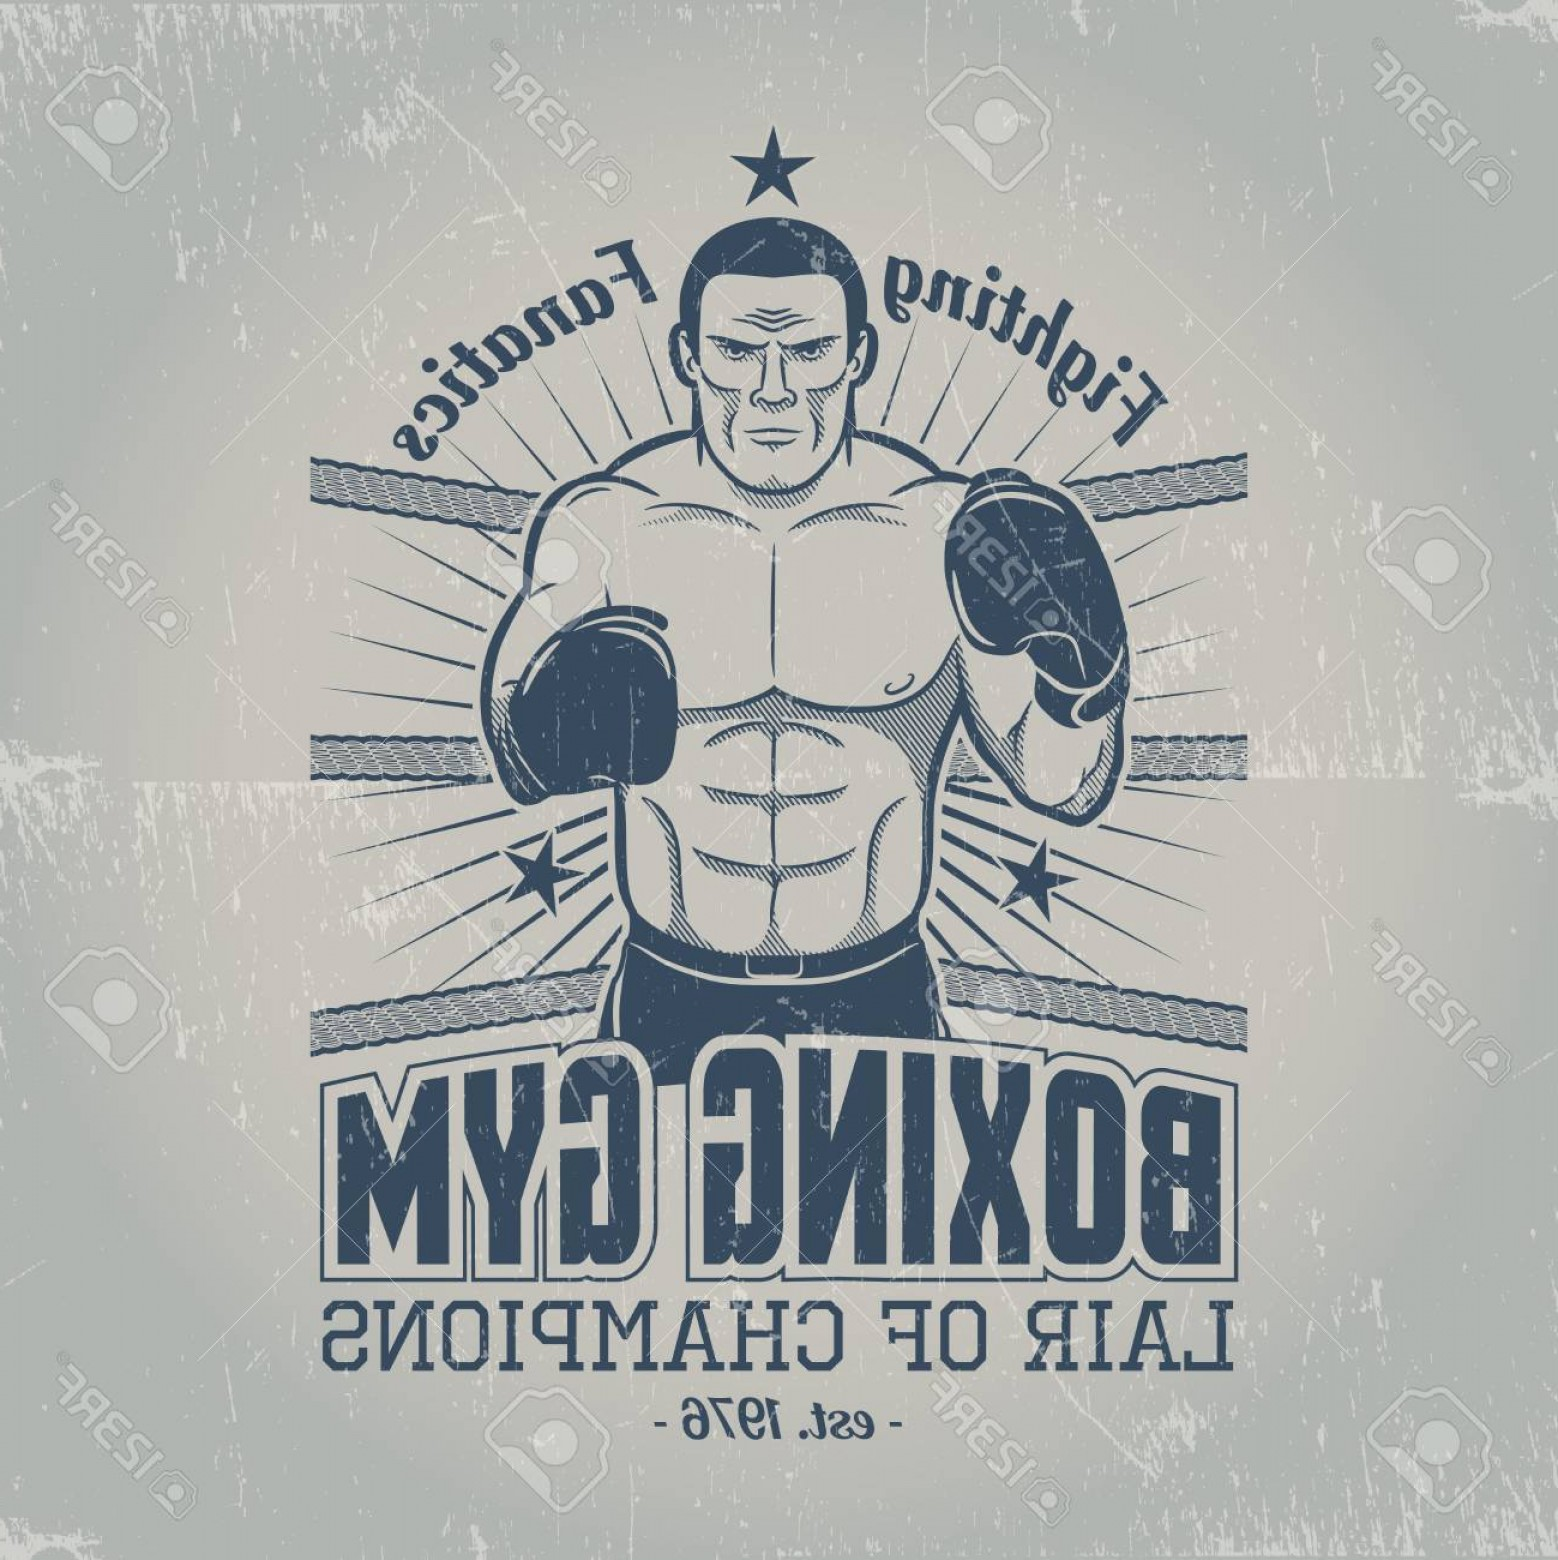 Champions Gym Vector: Photostock Vector Boxing Gym In Old School Style Emblem With A Boxer In The Ring In Grungy Style Scratches Are Grouped